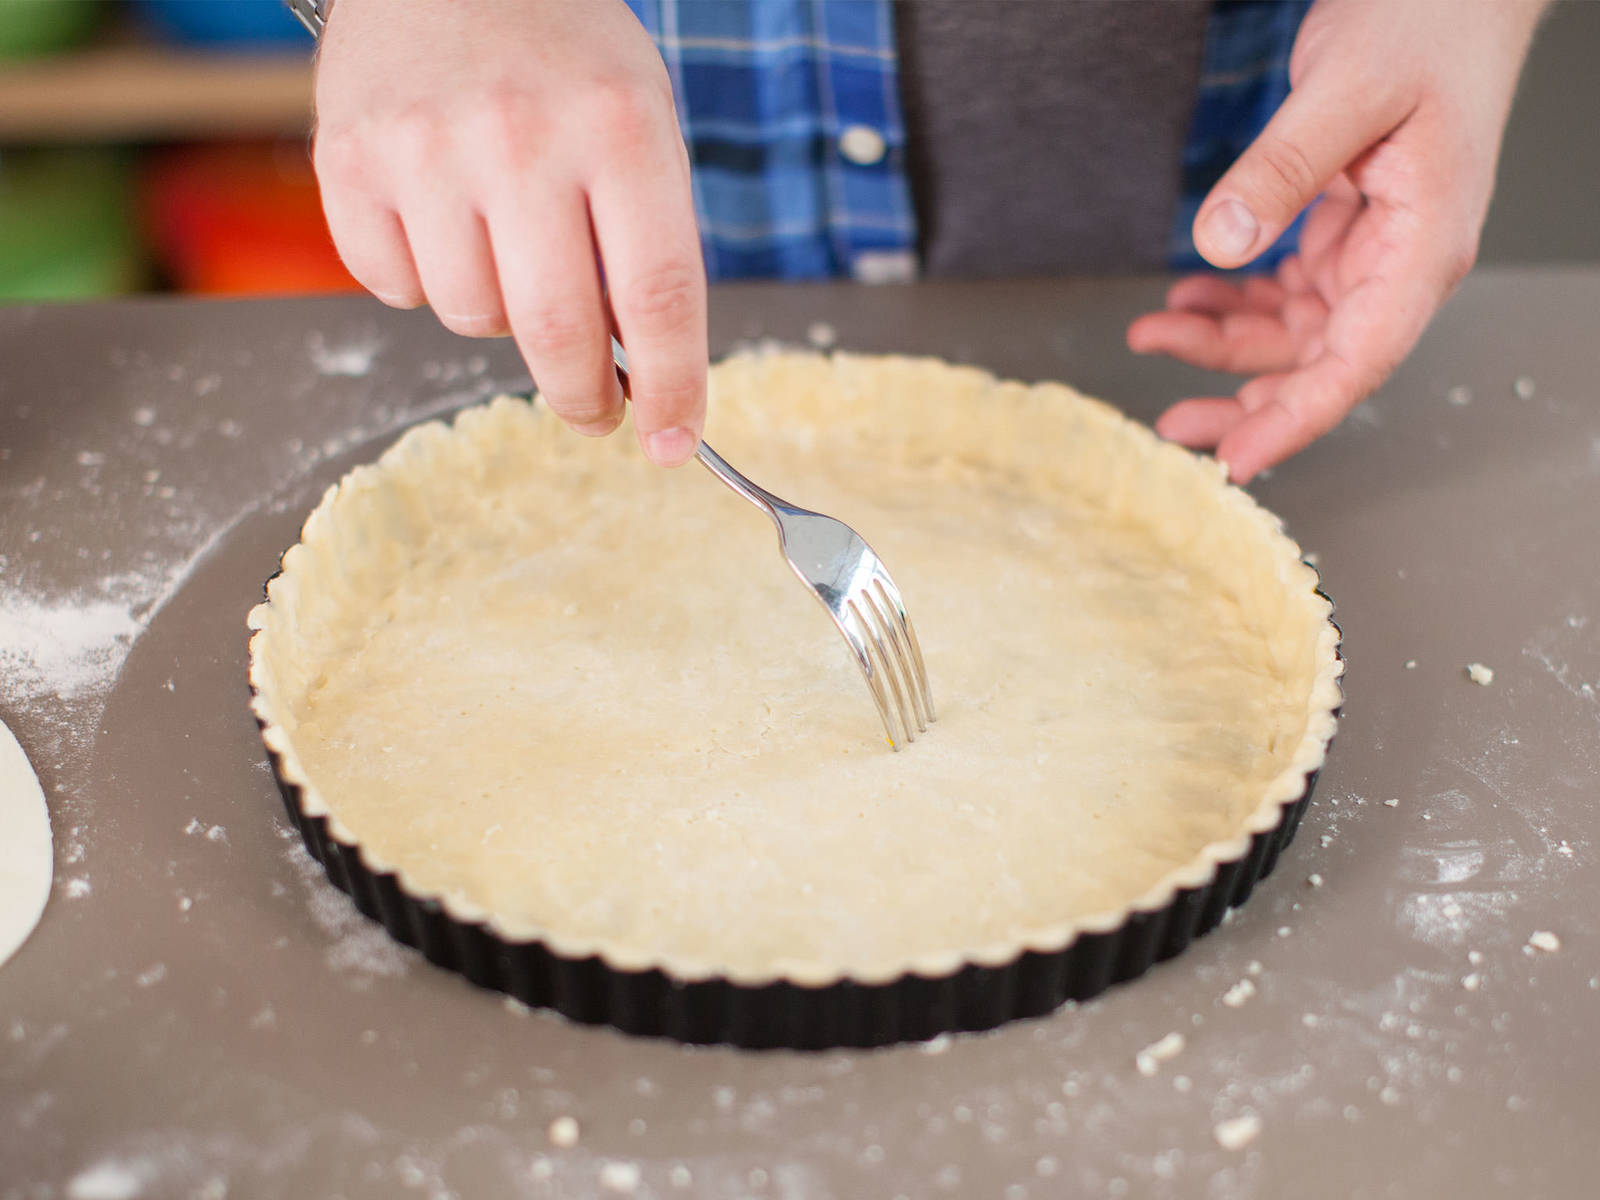 Flour work surface. Remove dough from refrigerator and roll out thinly. Grease tart pan and place dough into it. Trim edges if needed. Using a fork, poke holes into bottom, return to refrigerator, and let rest for approx. 10 min.